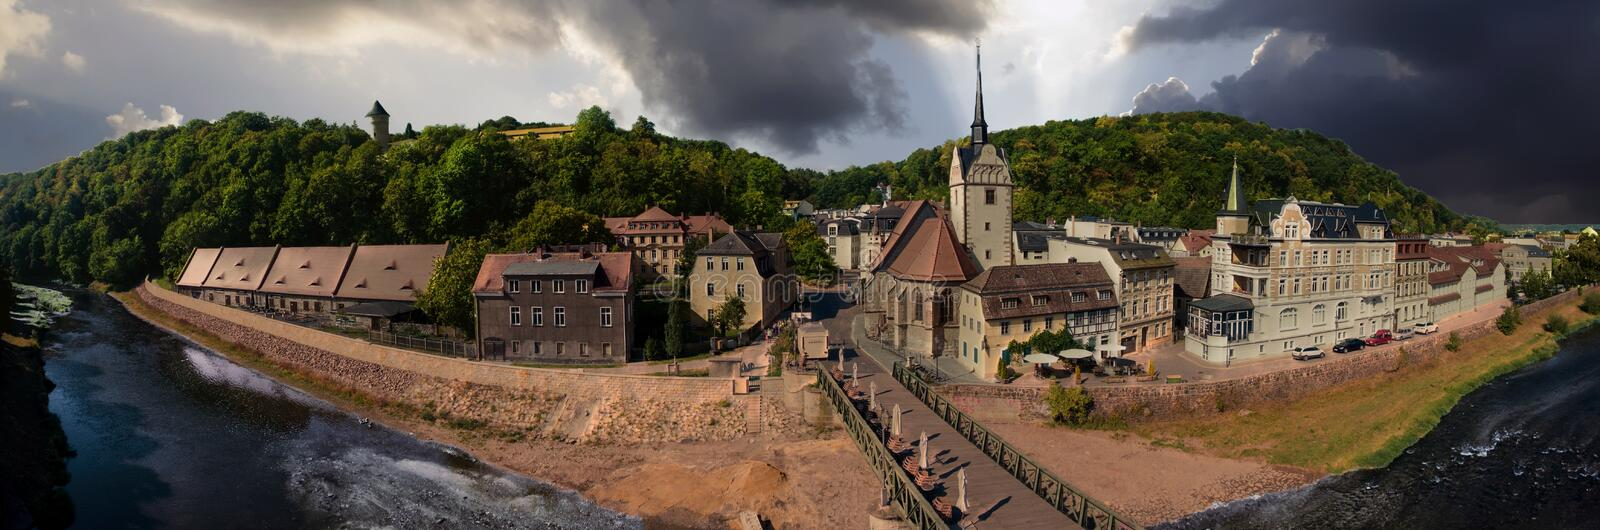 Download Gera Untermhaus Panorama Bridge Architecture Summer Stock Photo - Image: 79668352